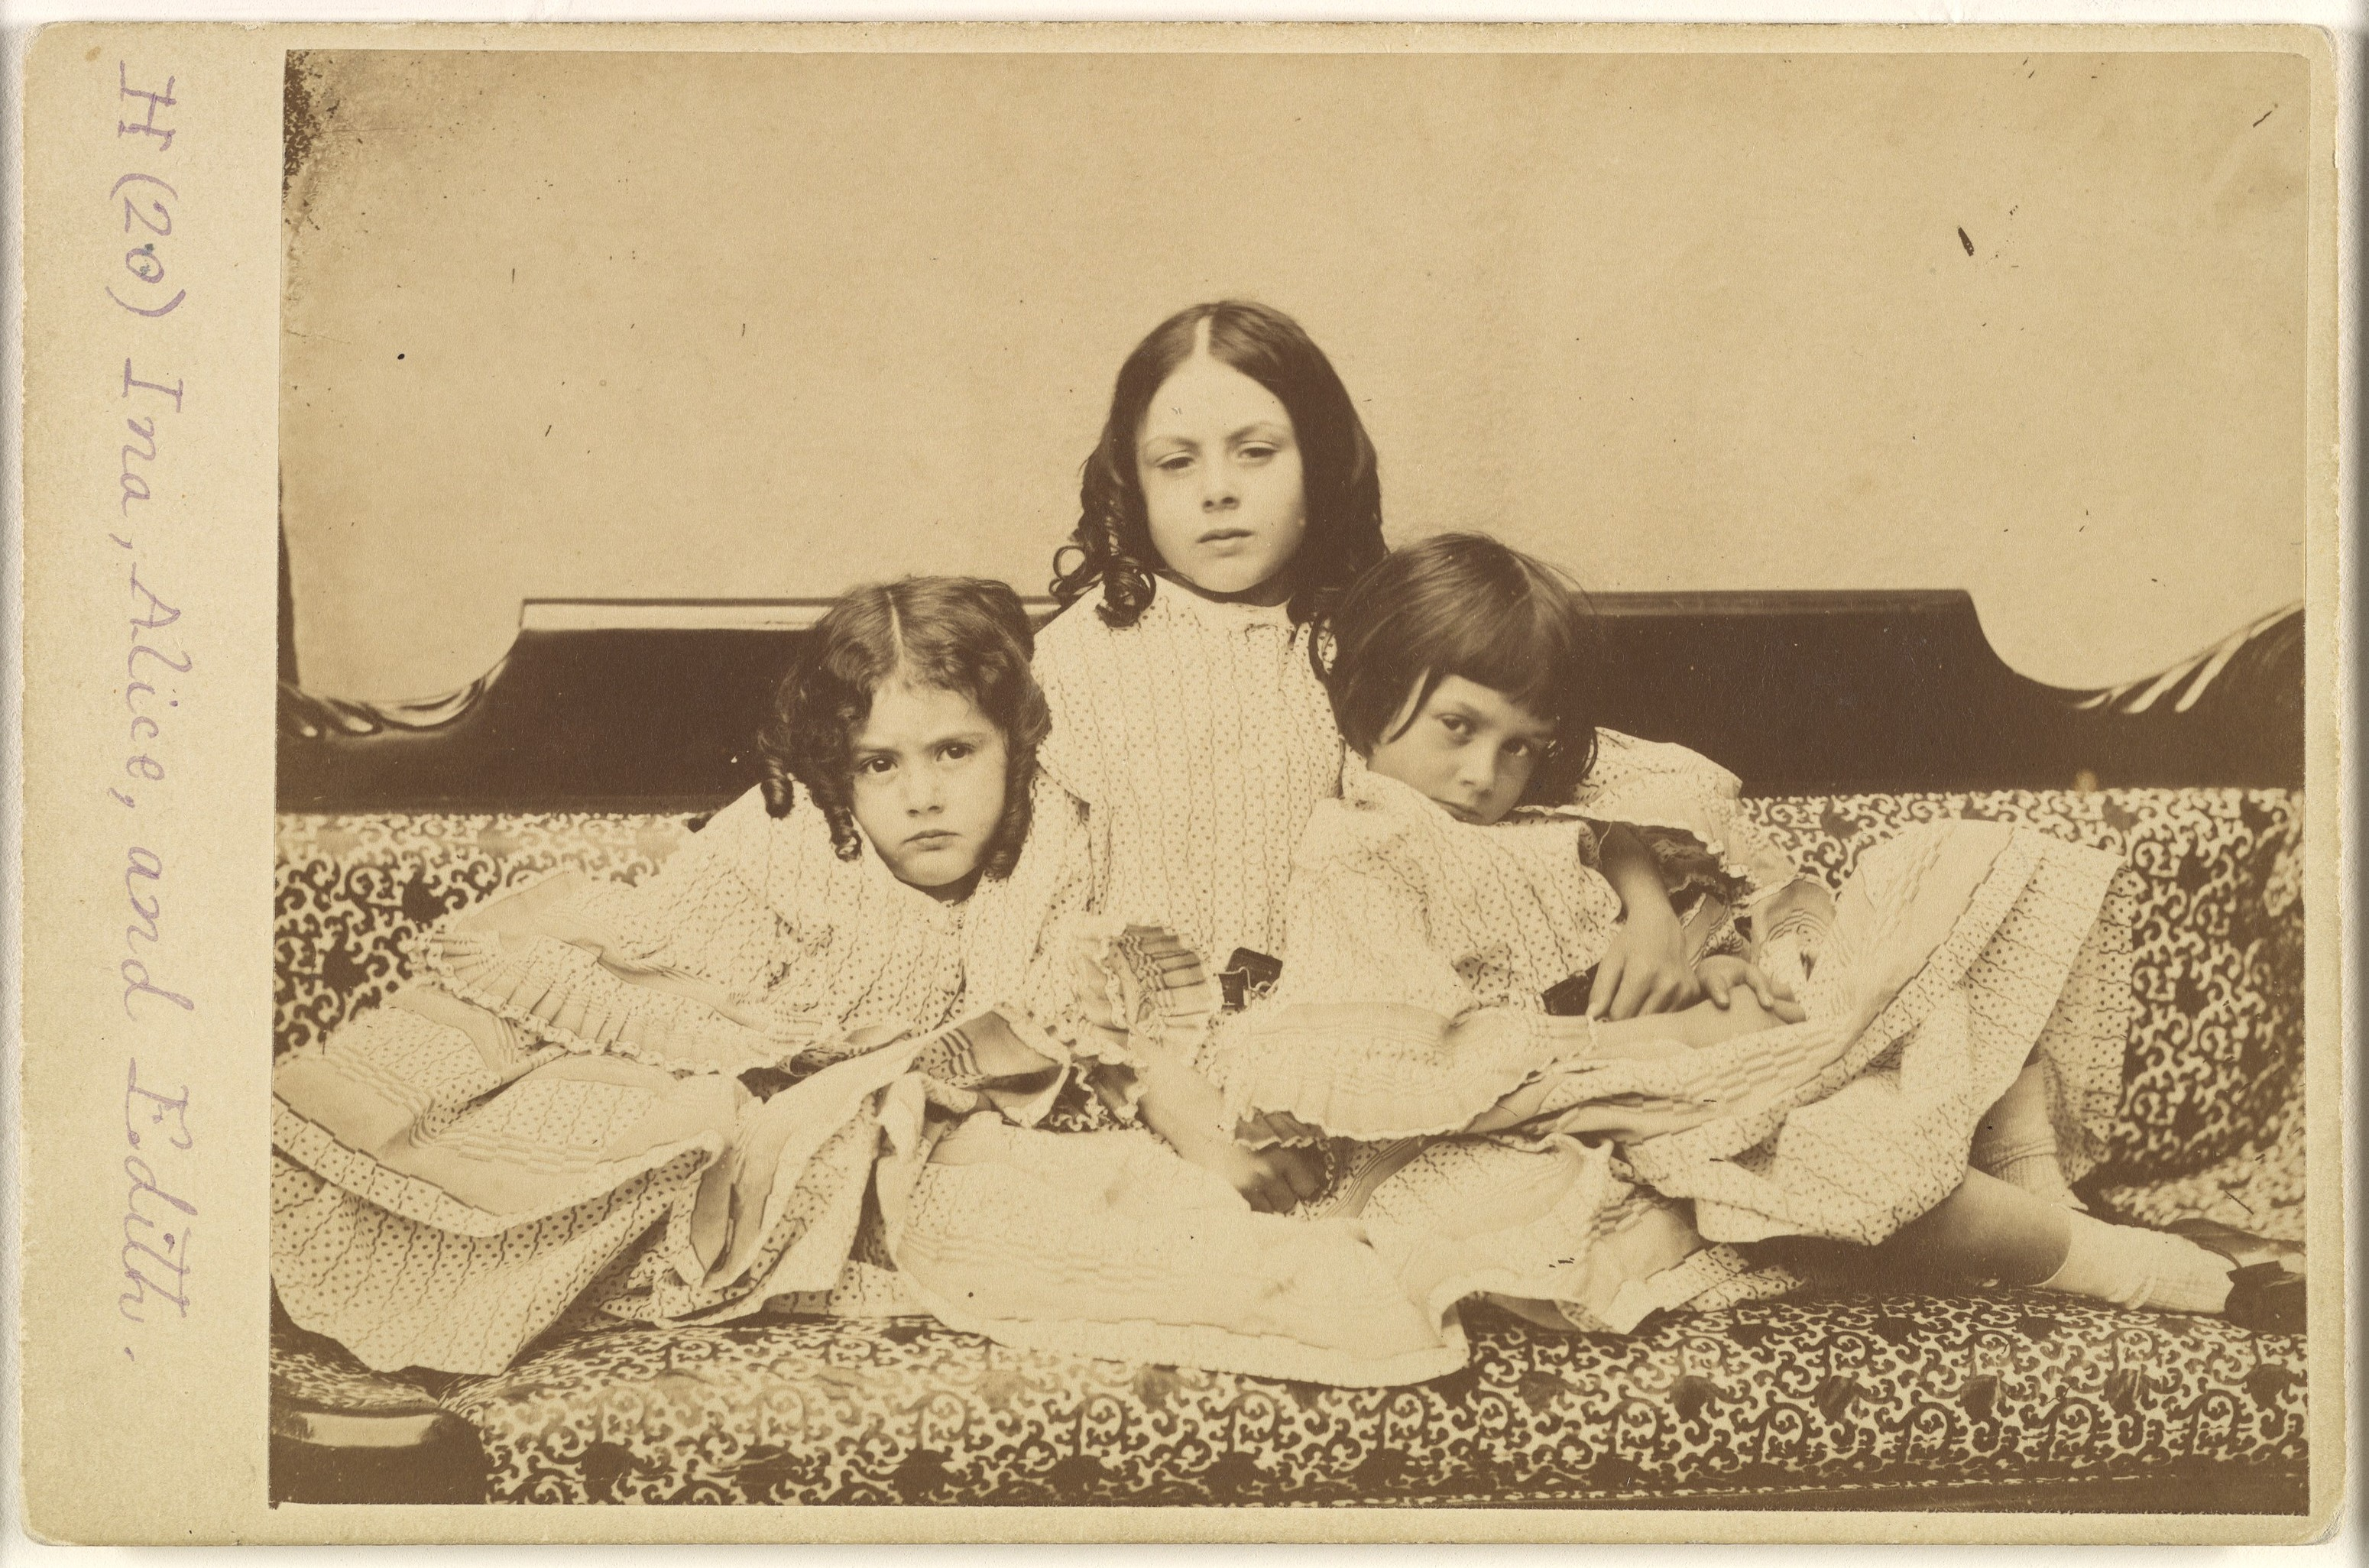 Sofa Travel Lewis Carroll | Edith, Ina And Alice Liddell On A Sofa